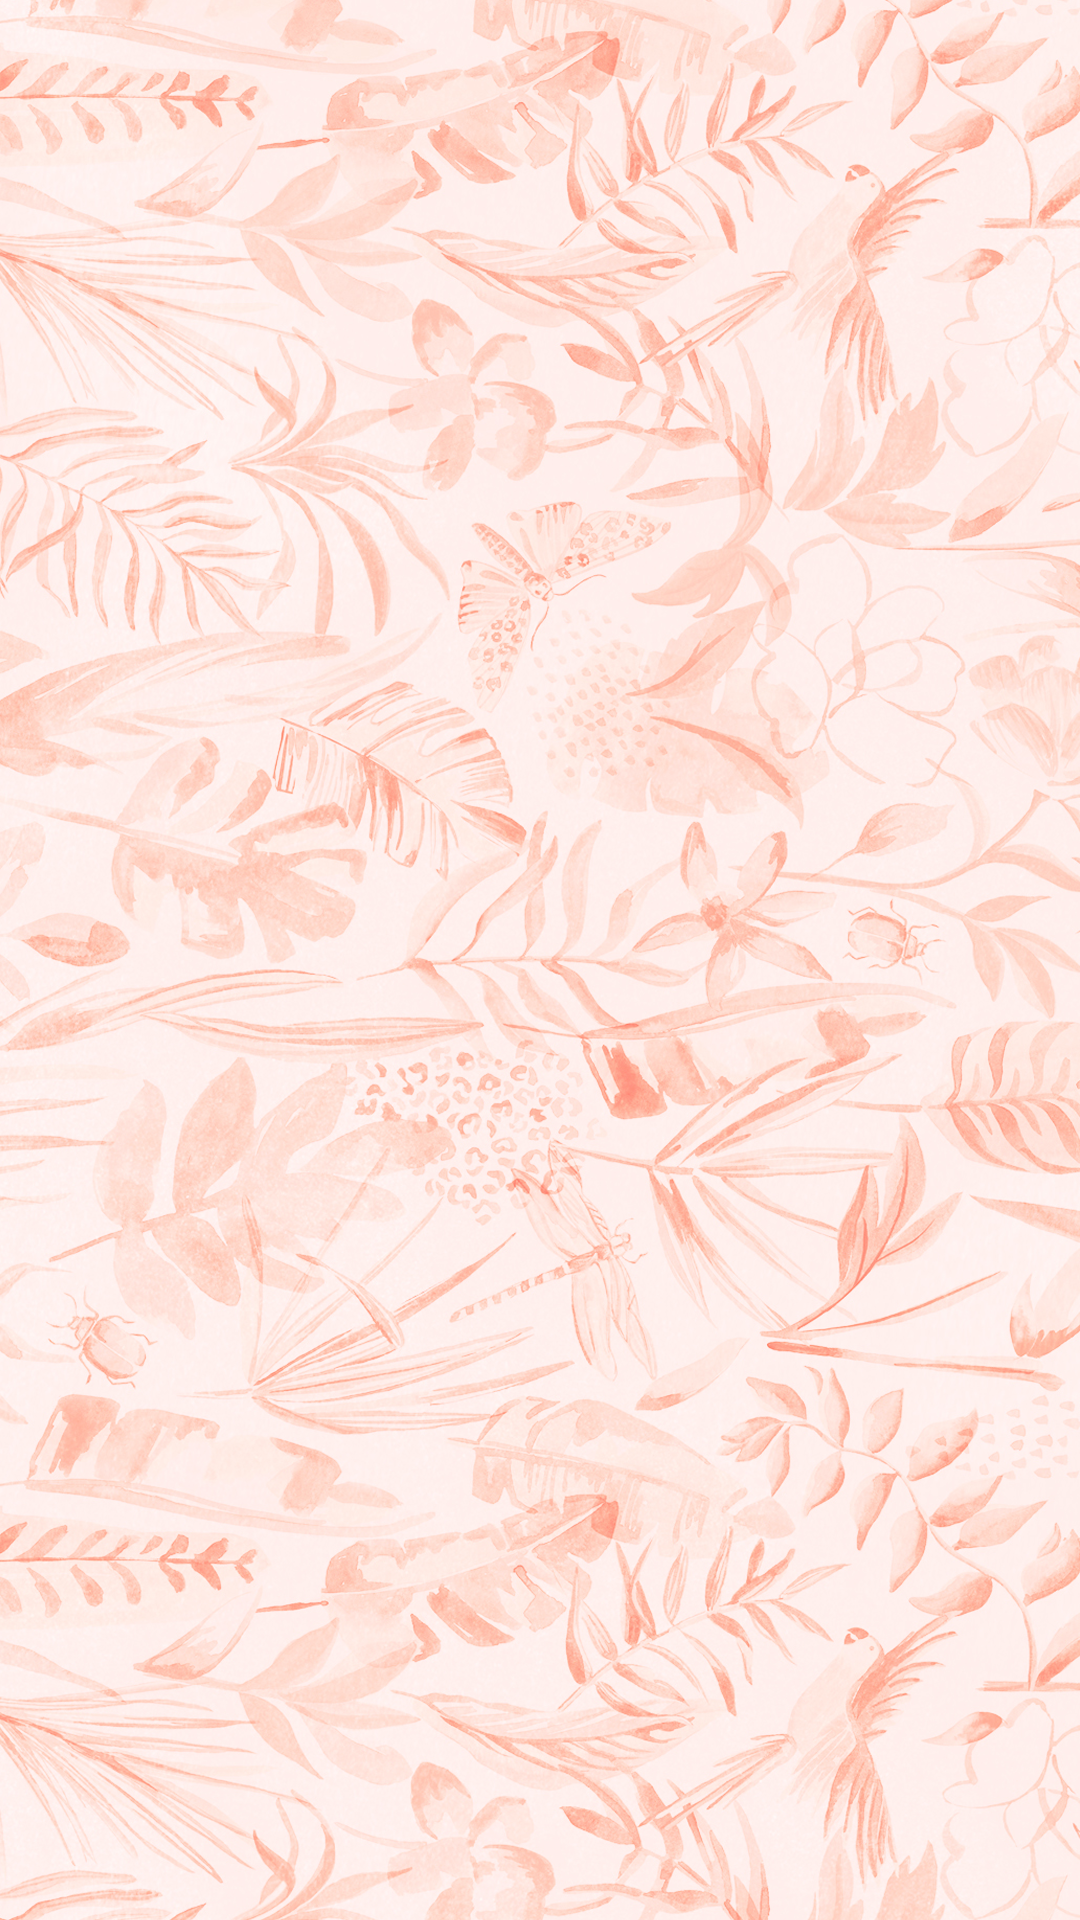 Blush Pink Floral Wallpaper For Your Mobile Cell Phone Tablet Or